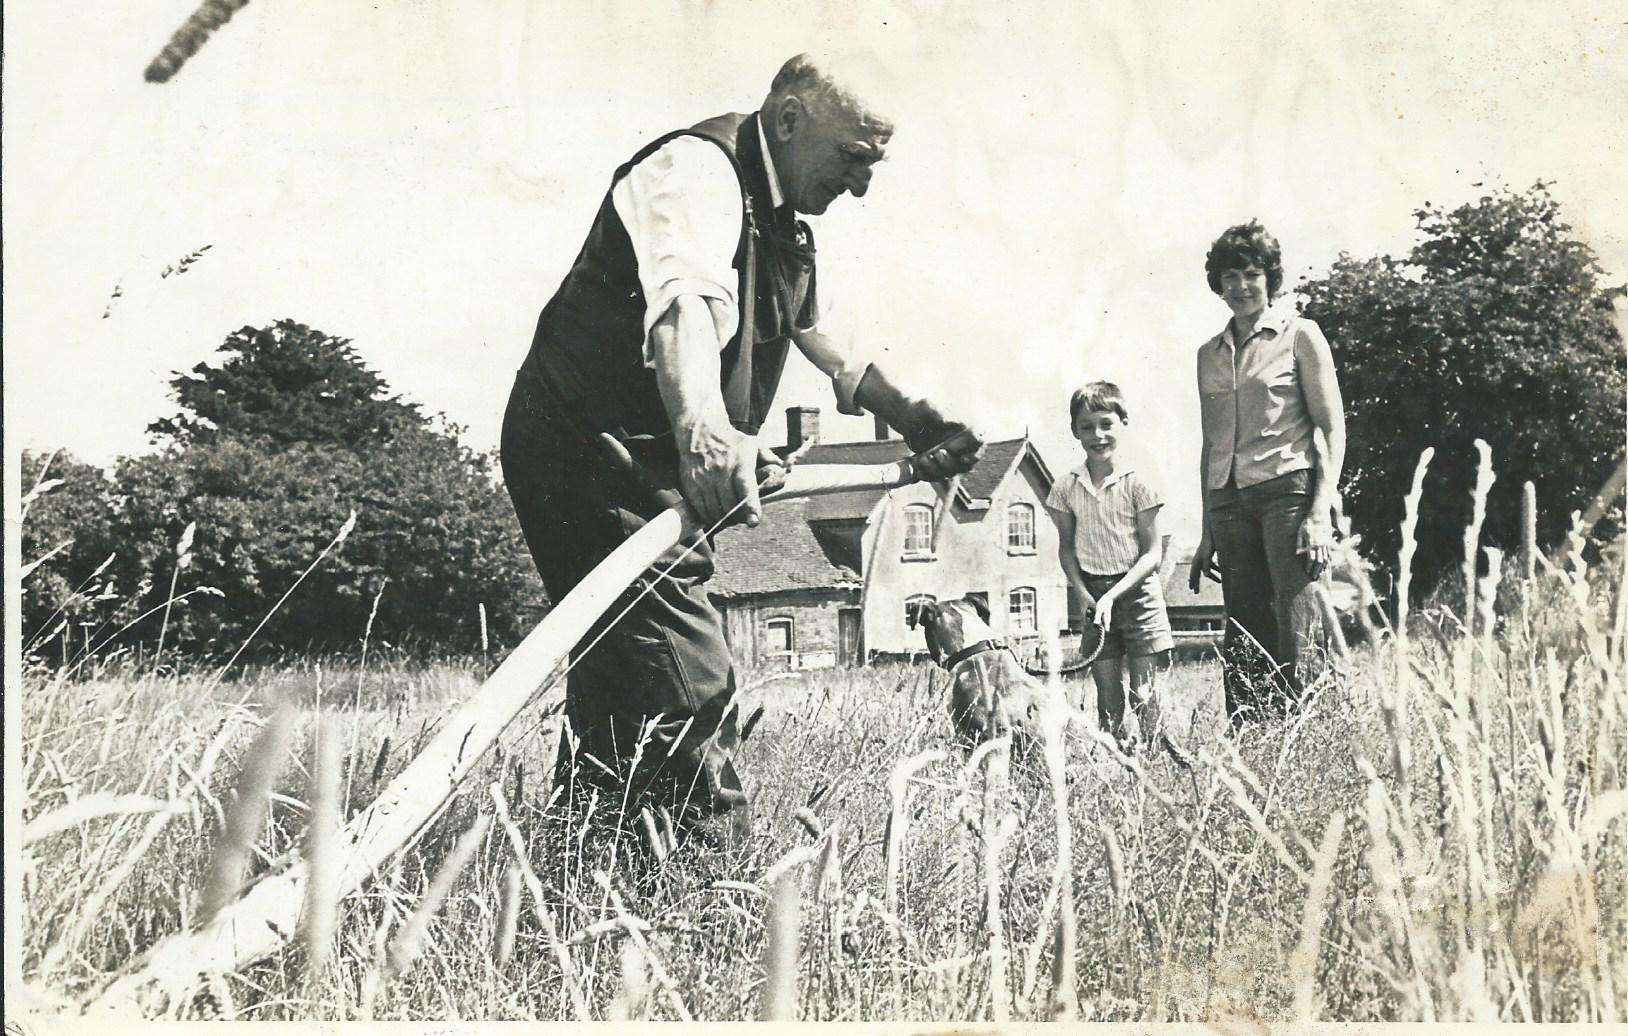 A former Parish Councillor and Verger at The Church, Len Bevan, using a scythe to cut the grass on Romsley Hill Common, no Strimmers in those days and not a lengths-man in sight watched by Gill Lowe and young son Philip in 1977. Submitted by John Lowe